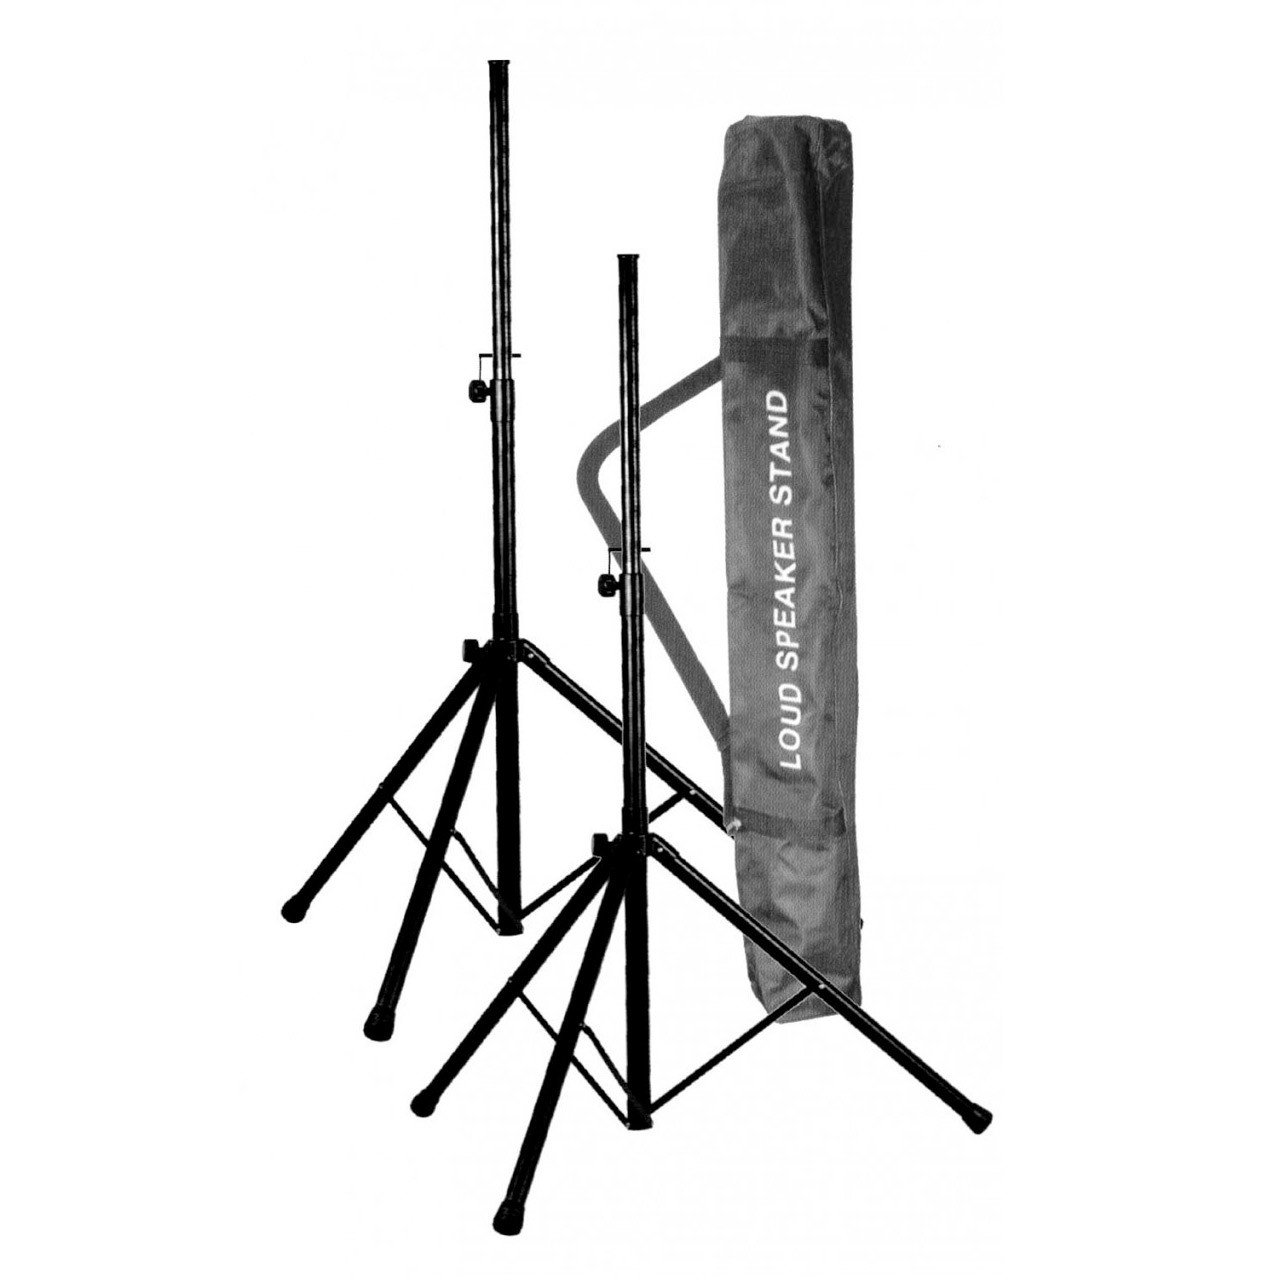 PA Accessories - UXL Deluxe Tubular All-Steel PA Loud Speaker Stands + Carry Bag Combo